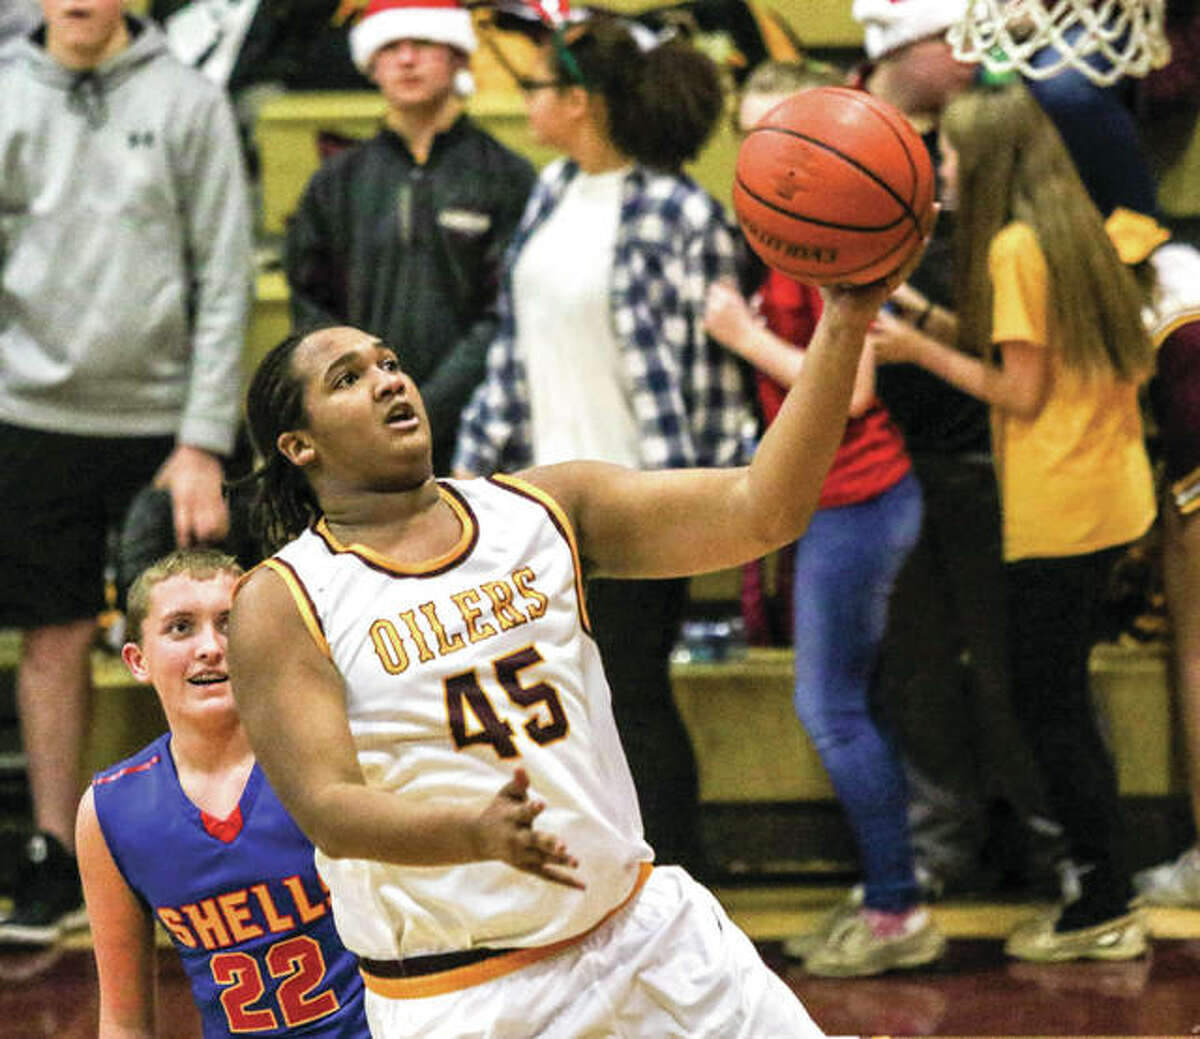 EA-WR's Darren Spruill (45) goes in for a layup as Roxana's Jacob Golenor watches the play during a game between the rivals on Dec. 8 at Memorial Gym in Wood River. The Oilers won that game vs. Roxana, but the Shells won a rematch Jan. 19 at the Litchfield Tournament.